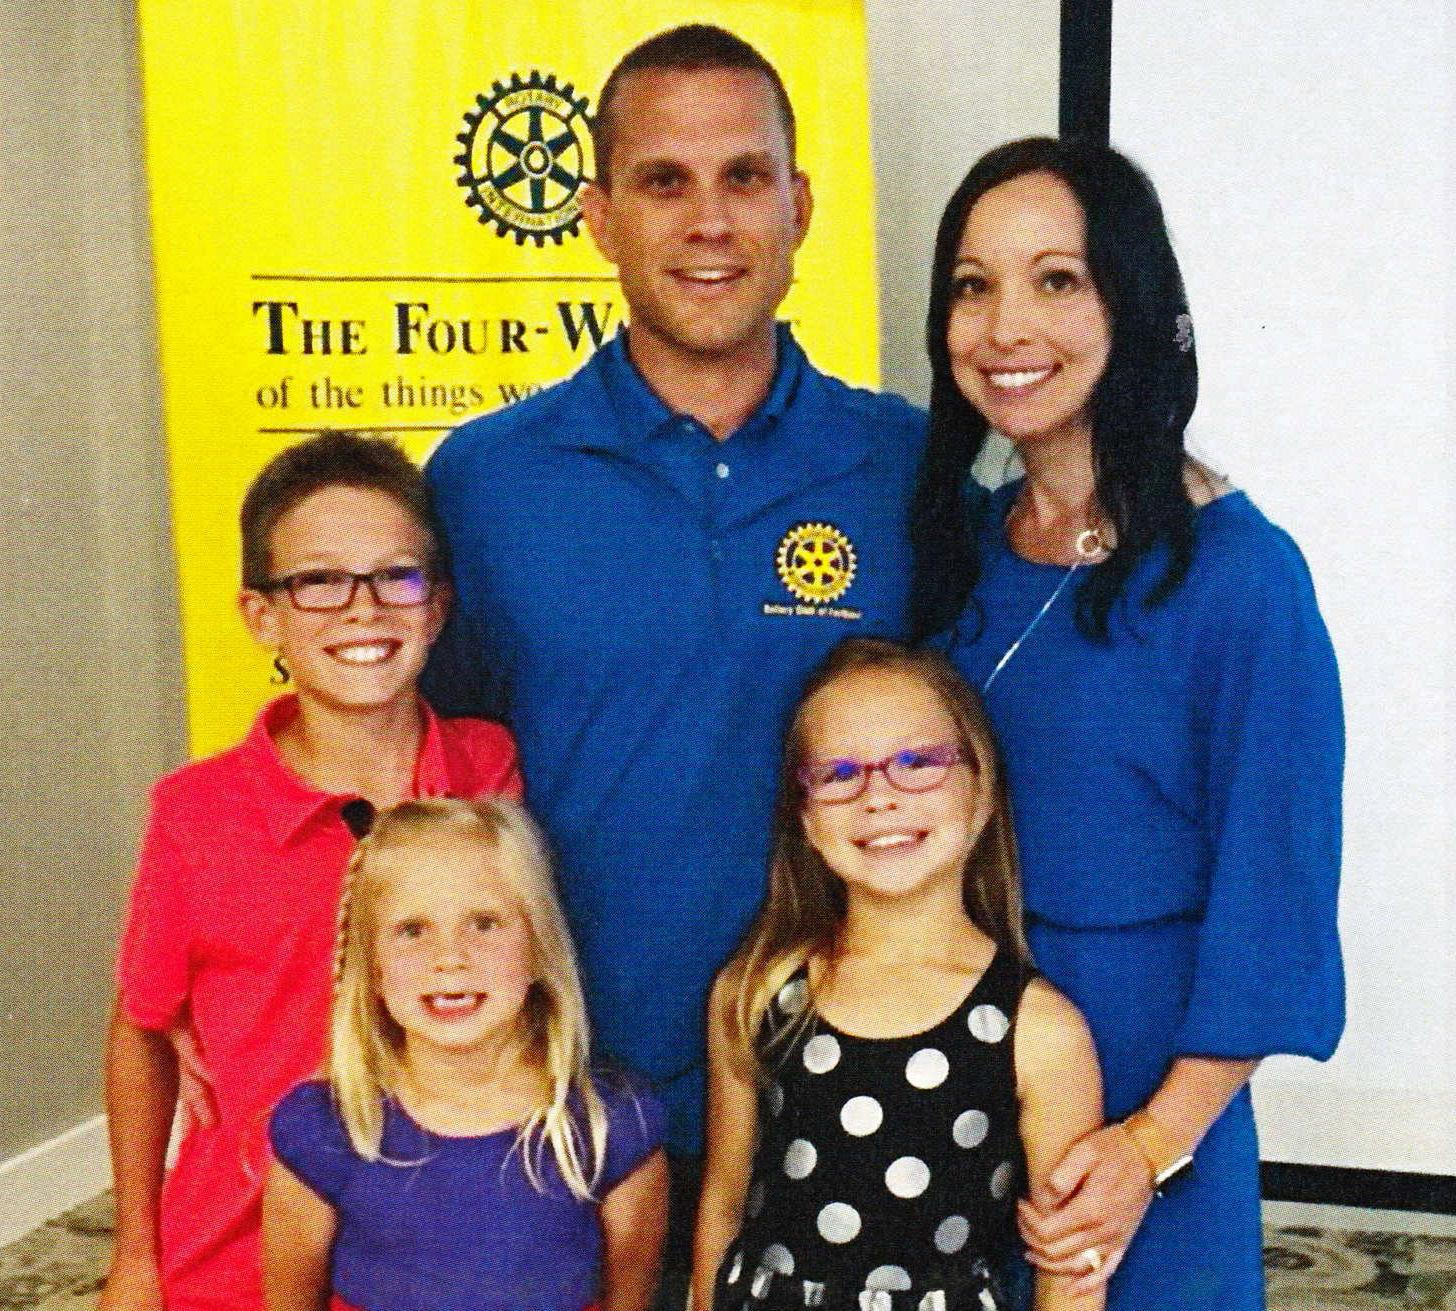 Stories | Rotary Club of Faribault